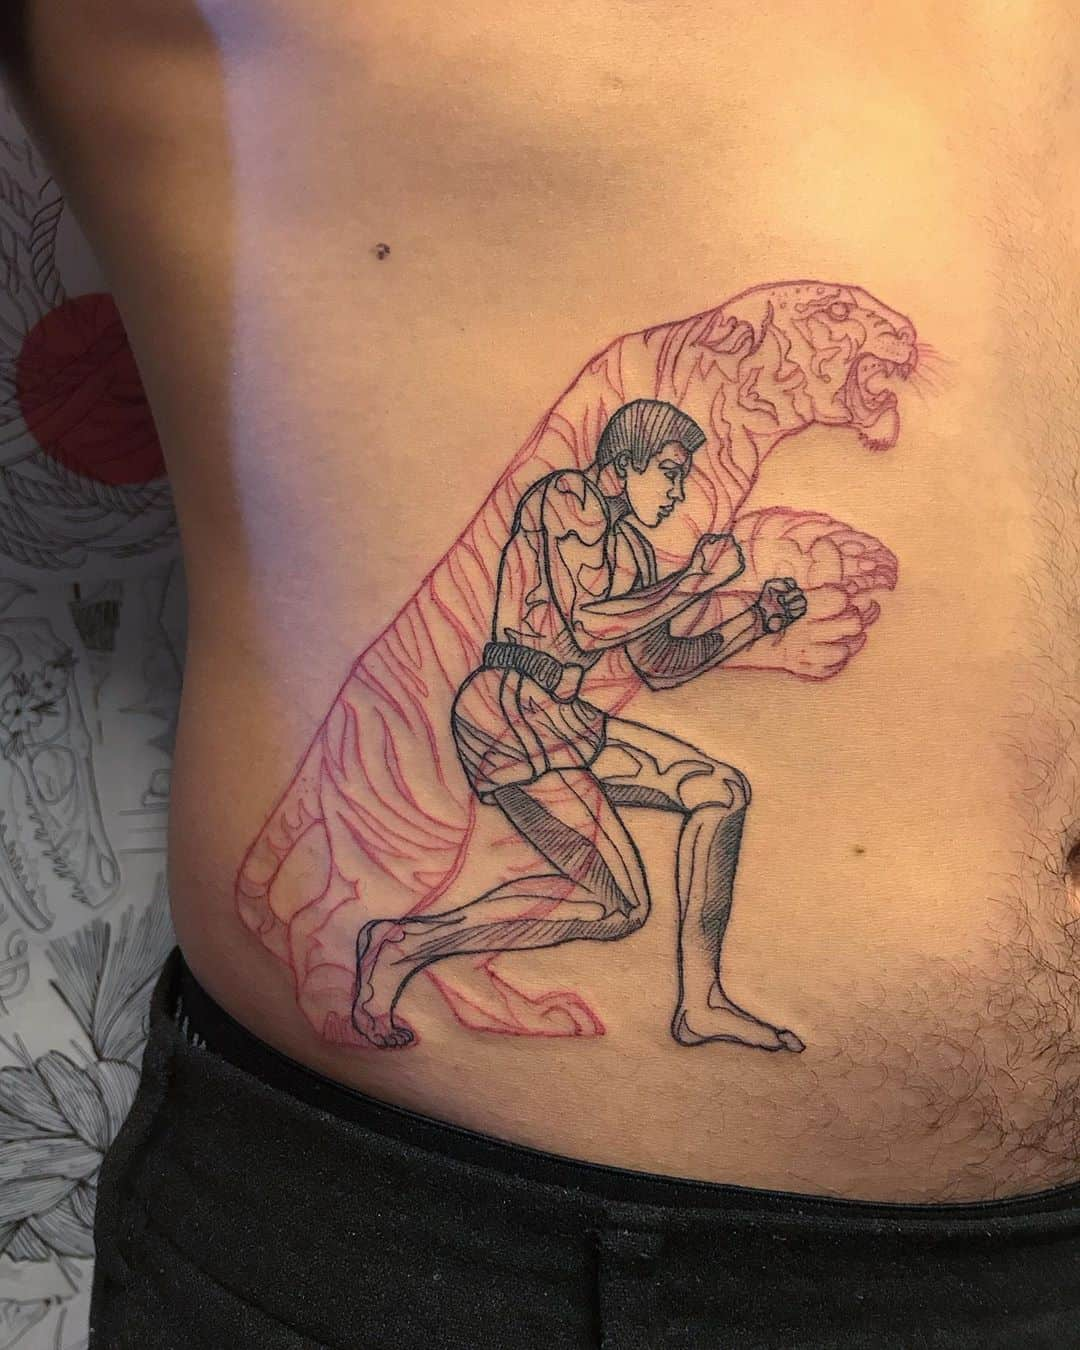 Latest Double Up Tattoo Designs of Pablo Puentes